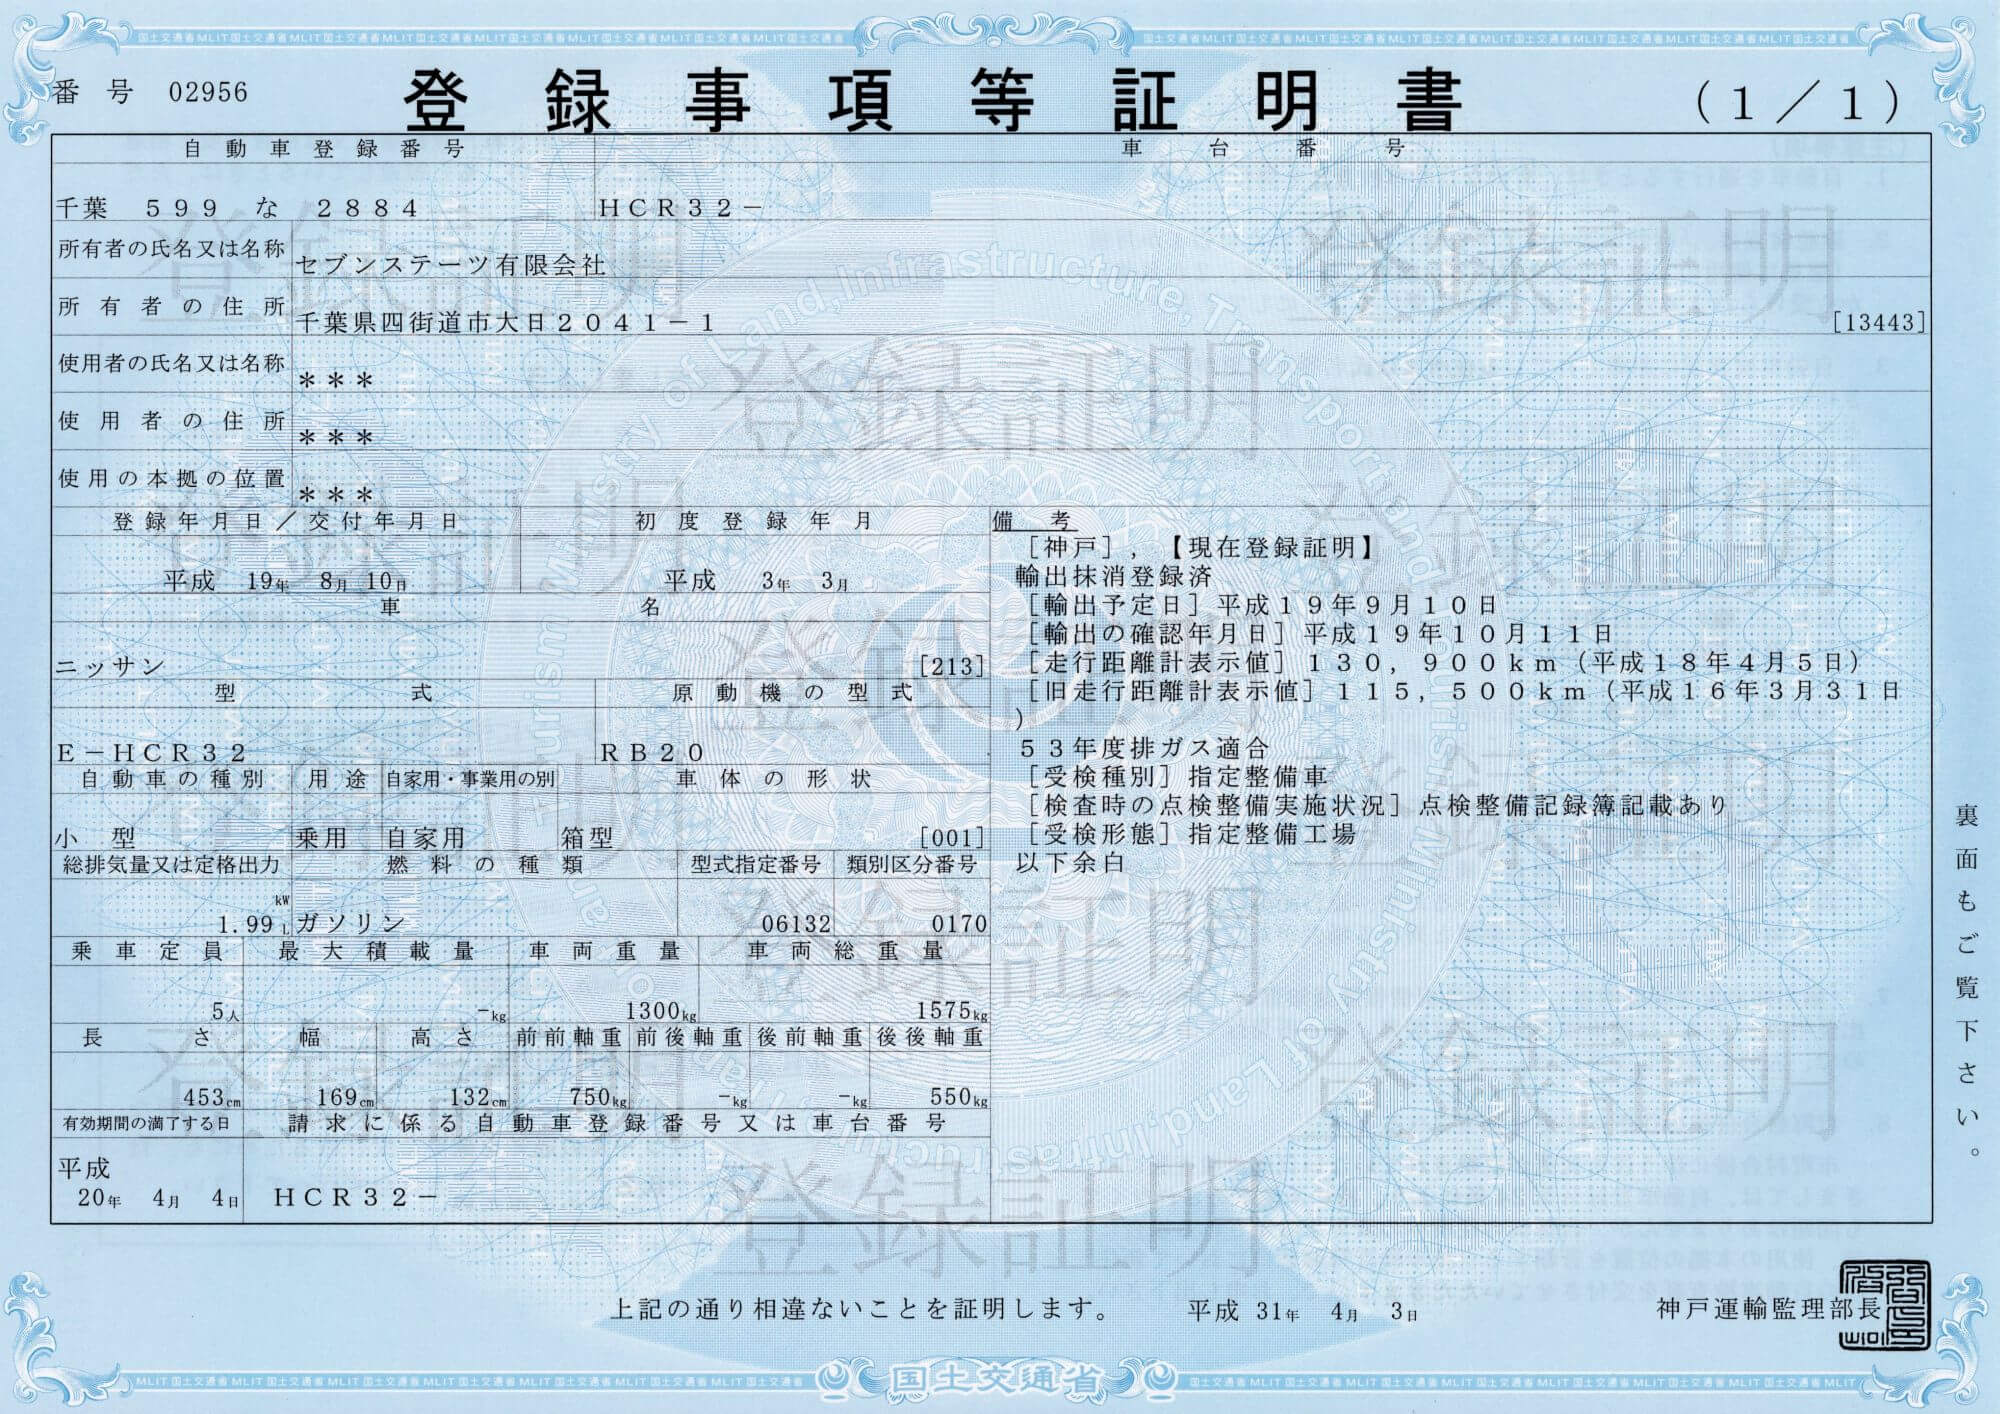 Japanese Registration Certificate - Japanese Car History Check on text examples, capacity examples, purpose examples, source examples, information examples, layout examples, organization examples, origin examples, paper examples, sales role play examples, medium examples, more examples, output examples, resolution examples, place examples, style examples, media examples, content examples, label examples,